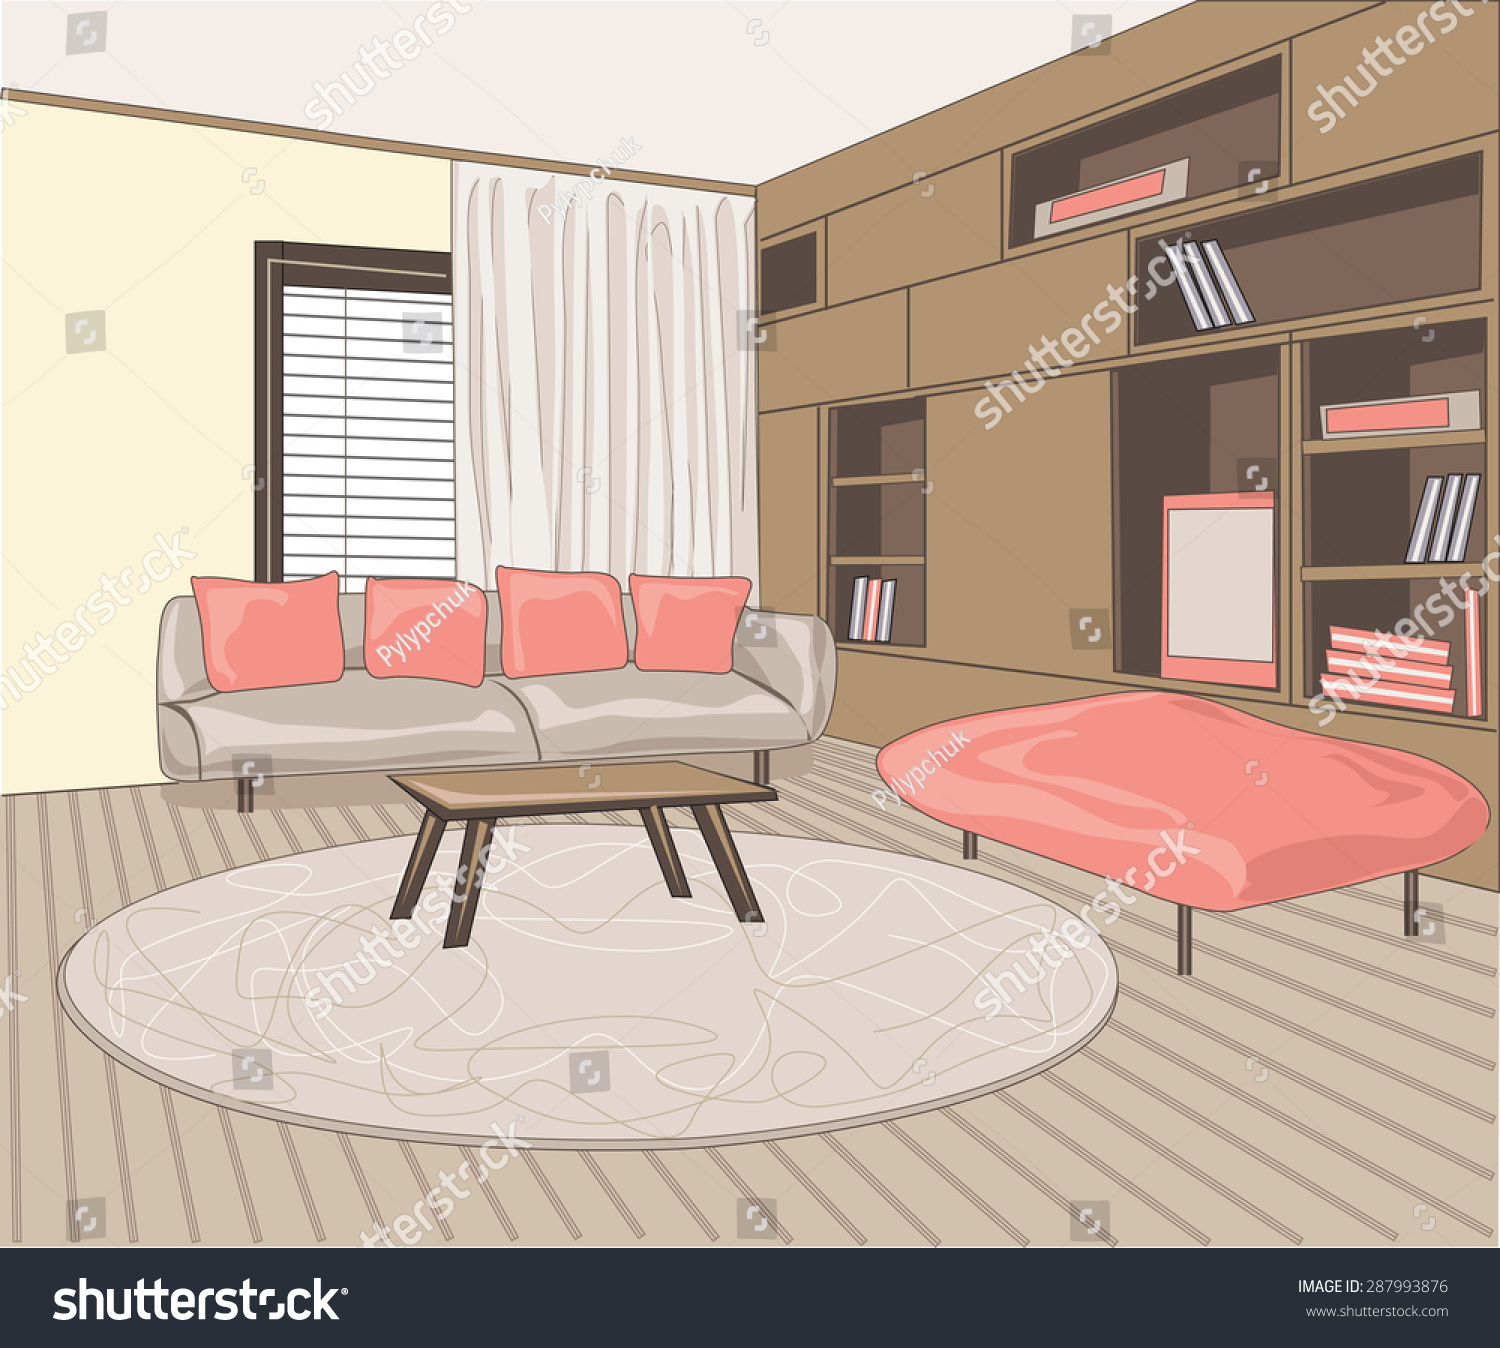 Room interior, with couch and bookshelving 1500 x 1348